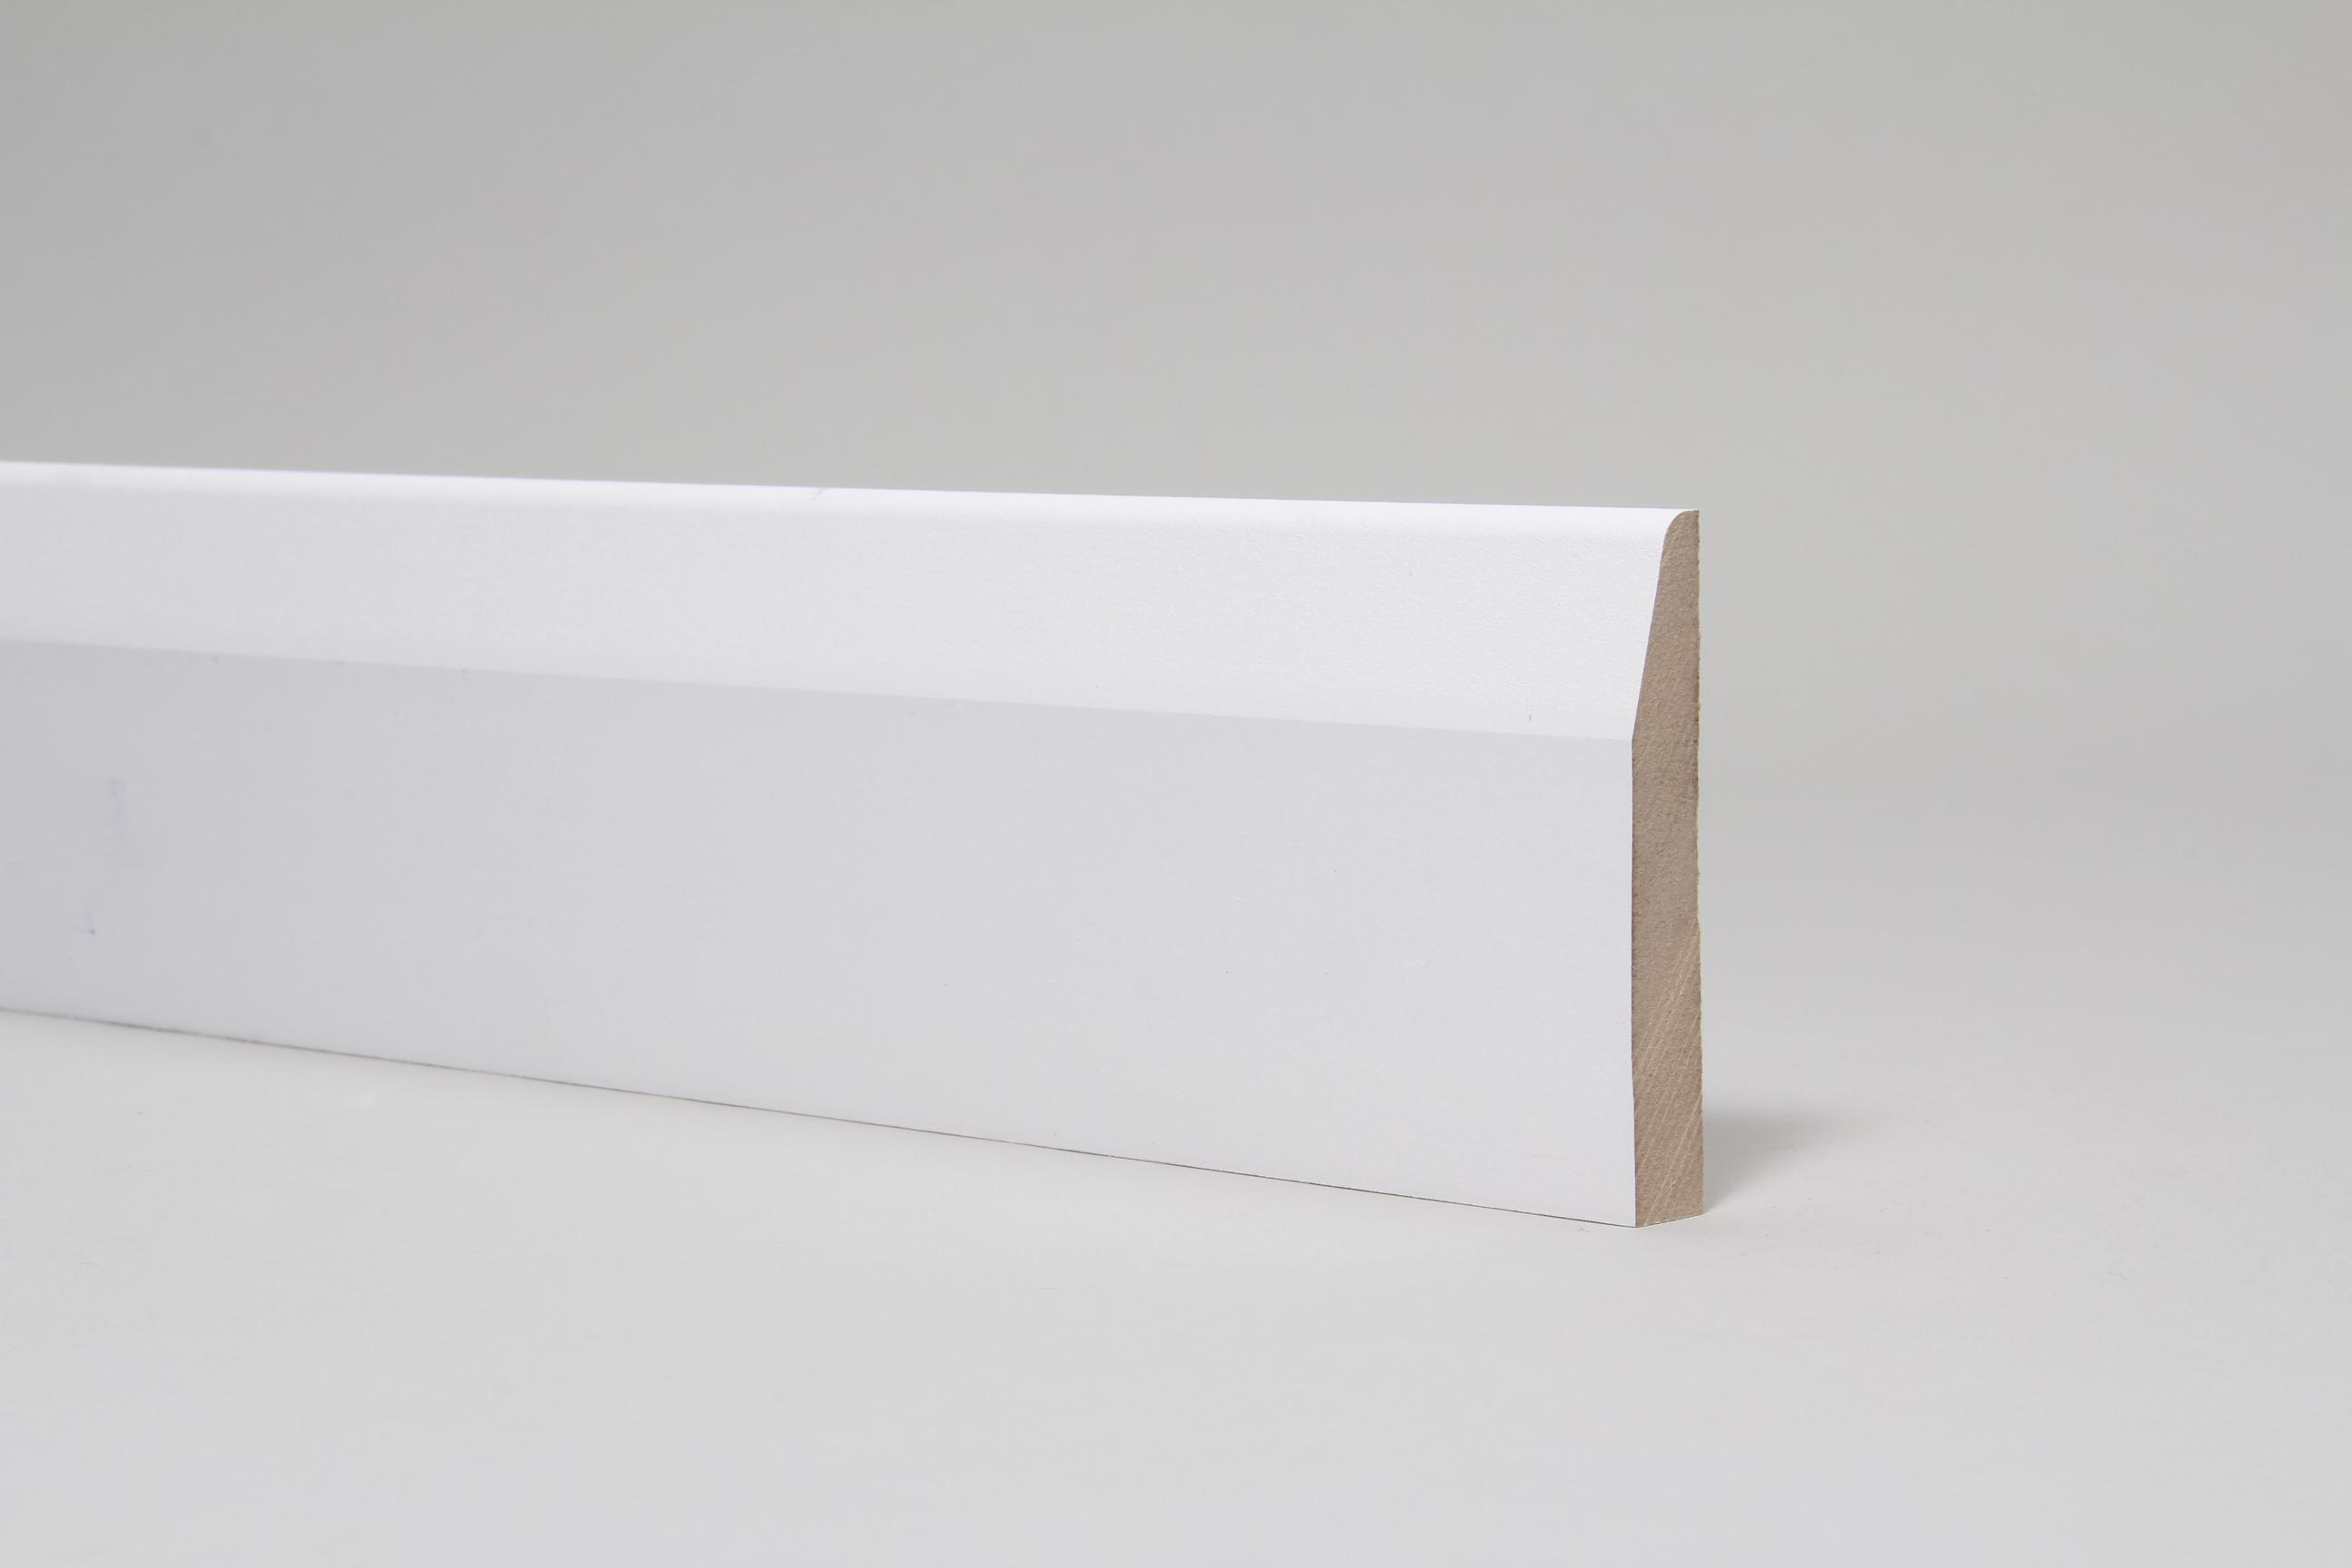 Chamfered & Rounded 15mm x 94mm x 4.4 Mtr Primed